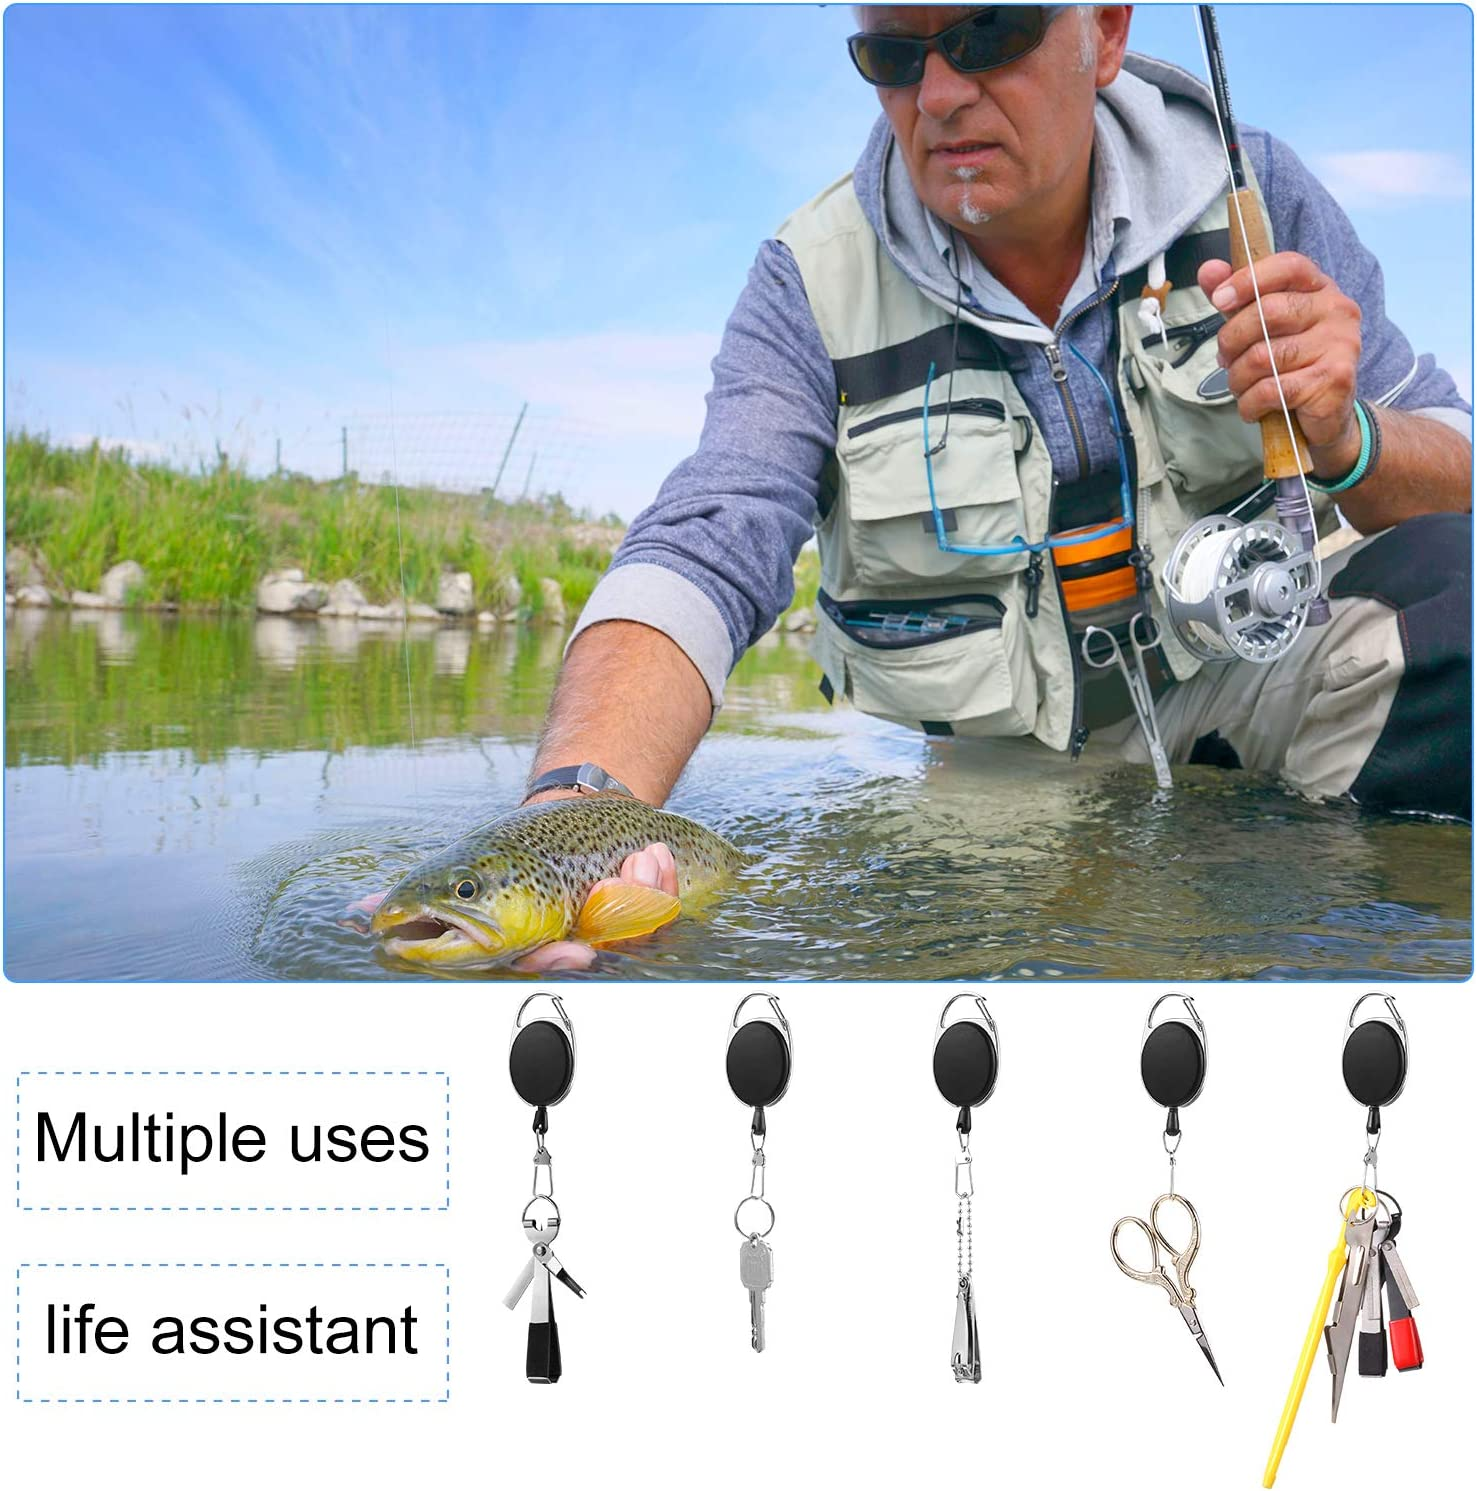 Sumind Fishing Knot Tying Tools 4 in 1 Mono Line Clipper with Fishing Zinger Retractor Fish Hook Remover Disgorger Kit for Fishing Angler Accessories Double-End Hook Disgorger